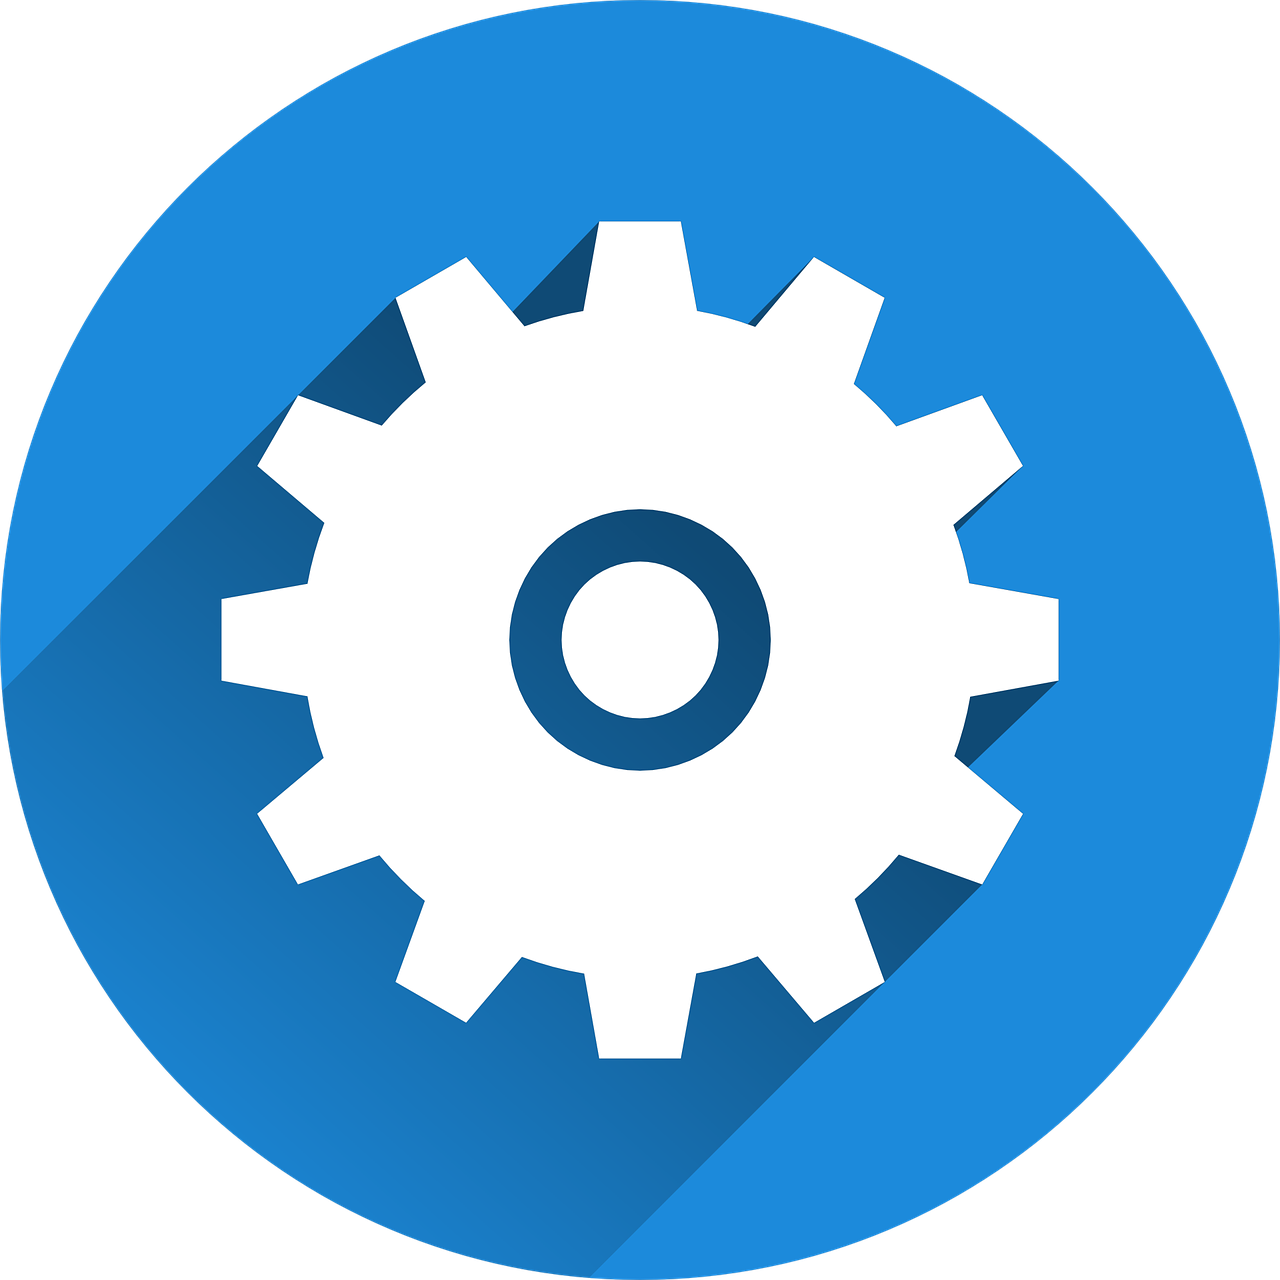 gear-1077550_1280.png